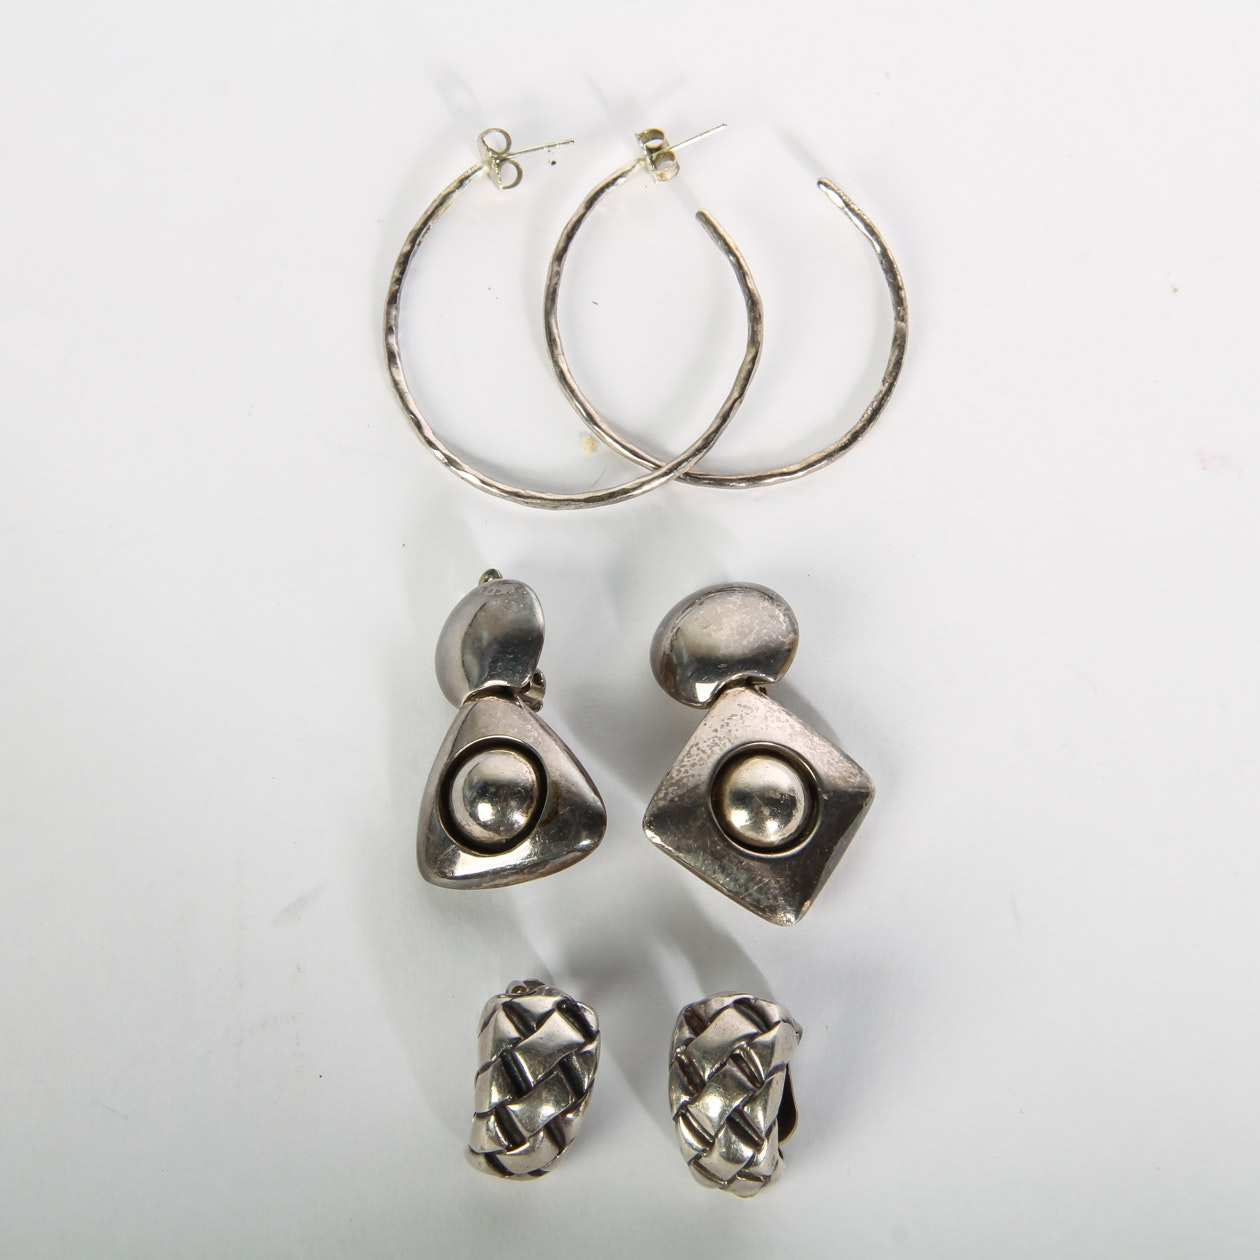 Set of 3 Sterling Silver Earring Sets